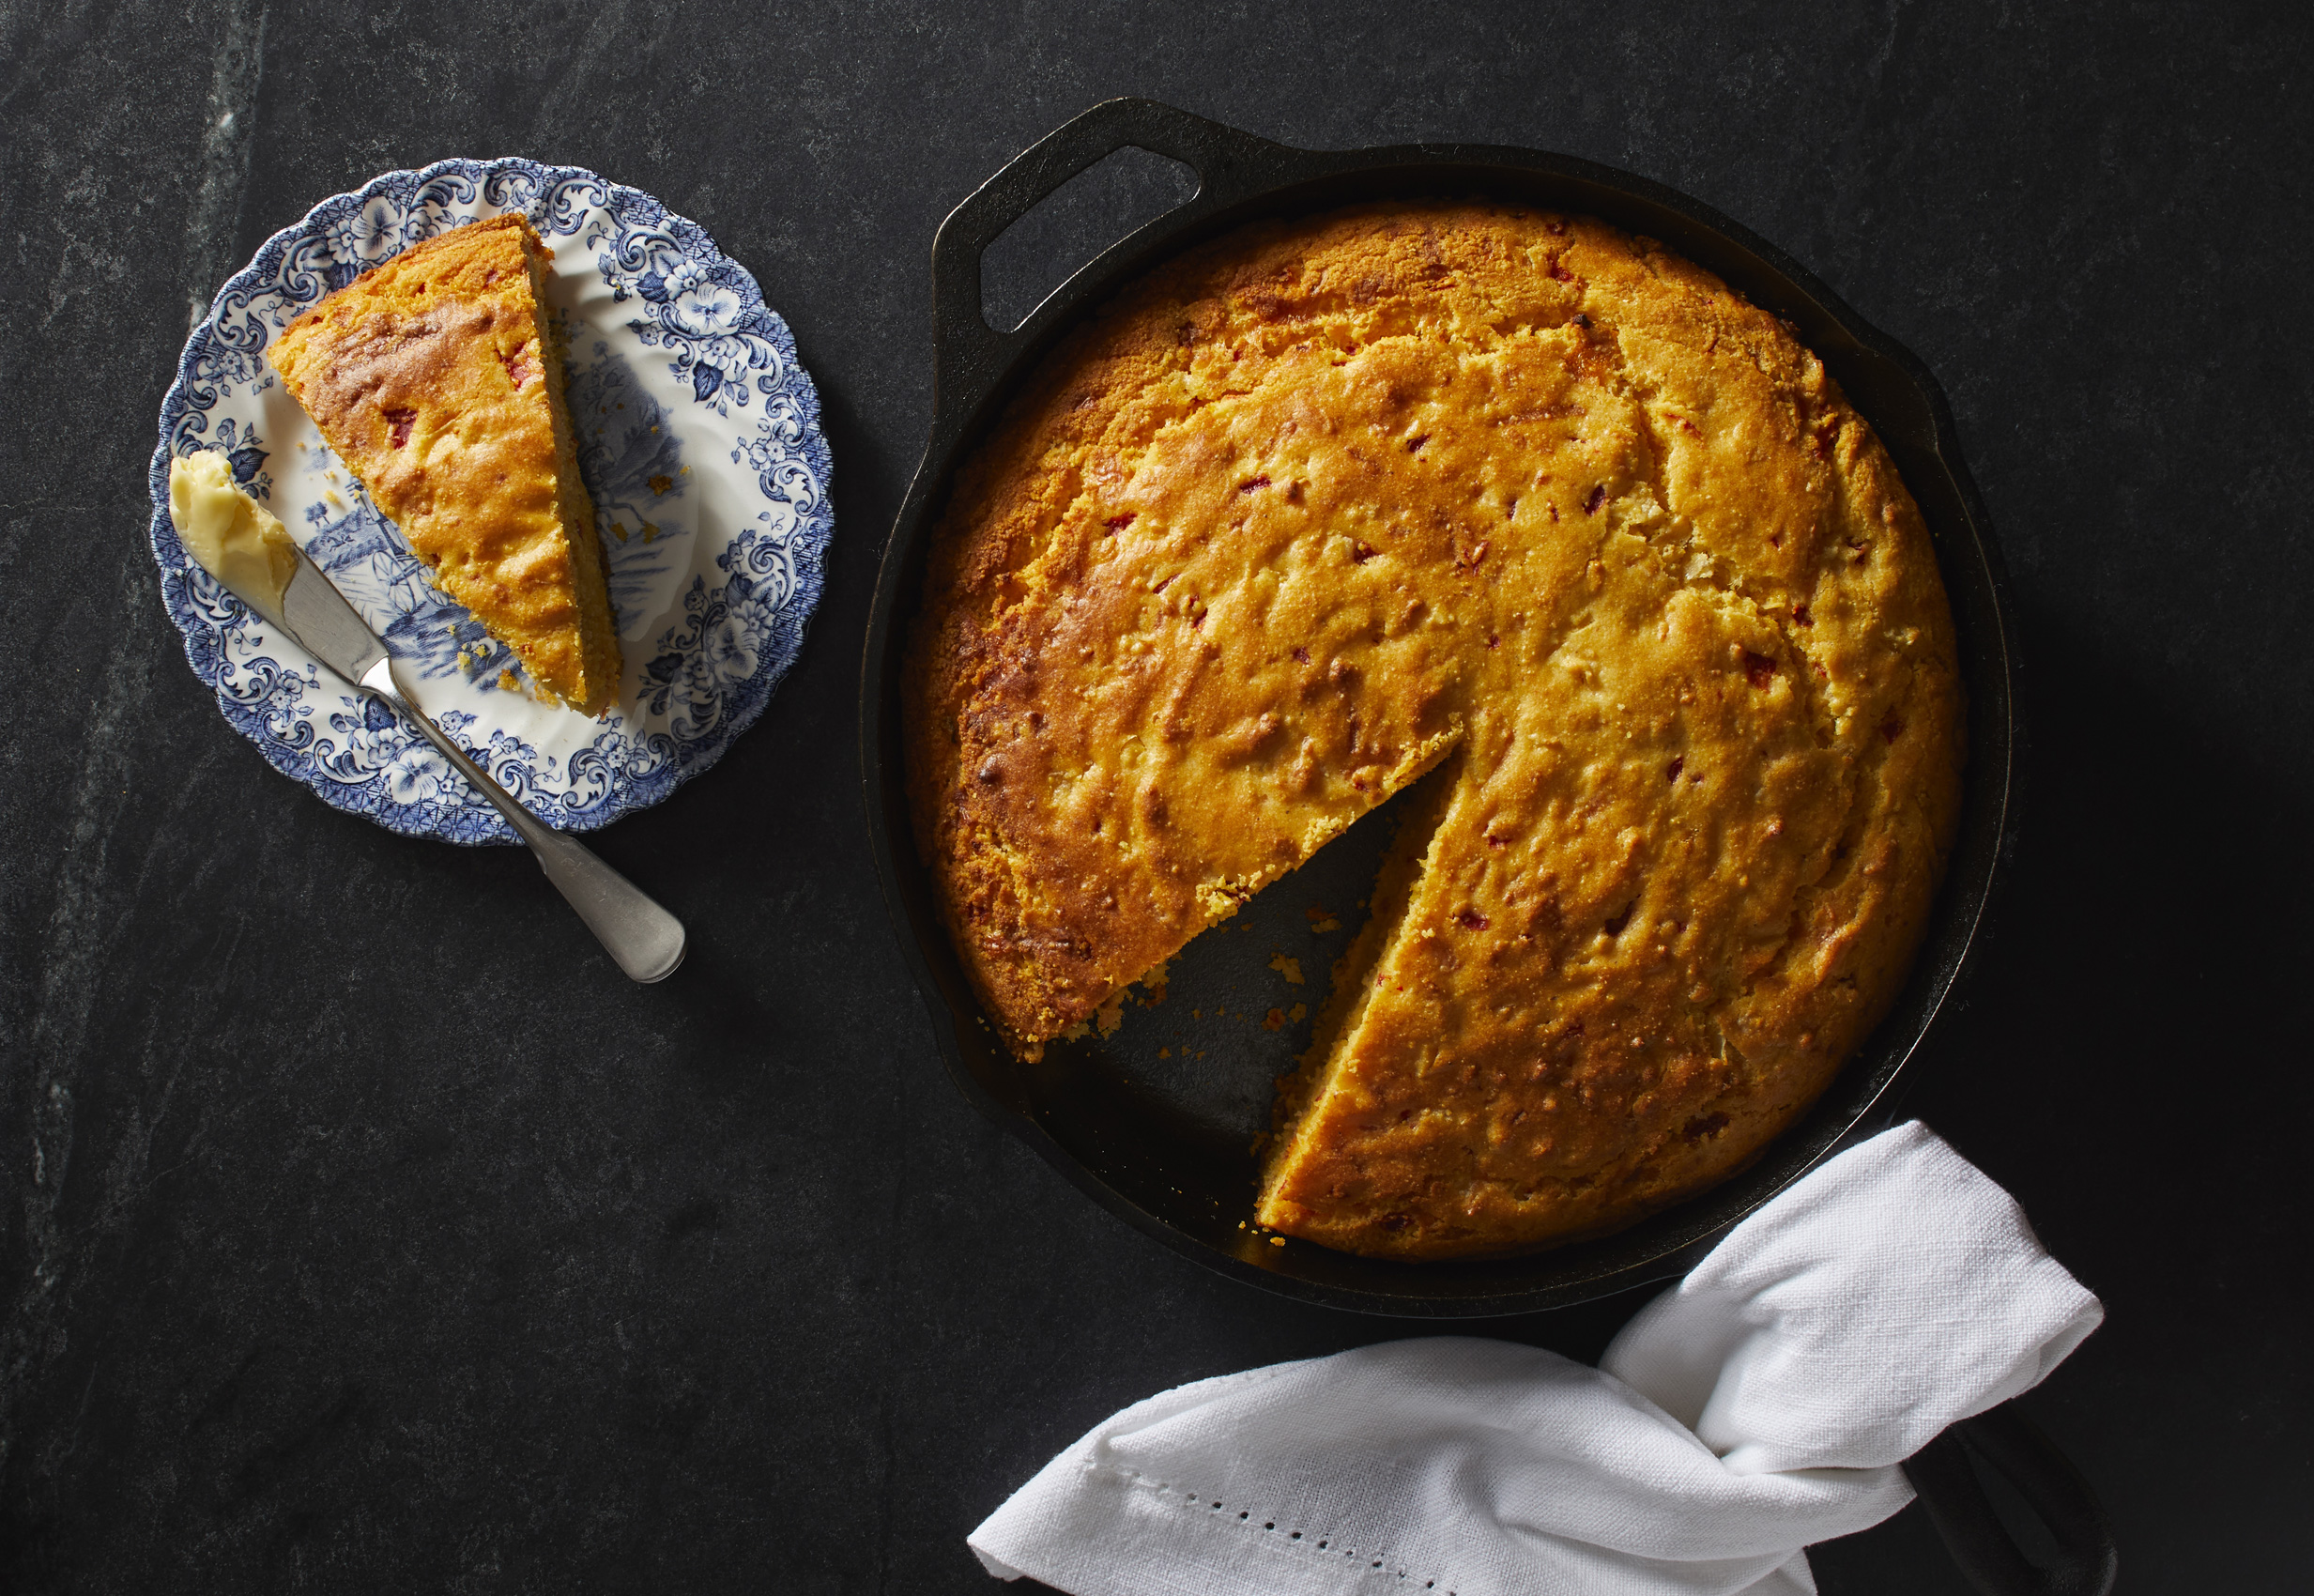 Red Pepper and Monterrey Jack Corn Bread photo by Chris Kessler Photography.  Chris Kessler is a freelance Photographer based in Milwaukee Wisconsin. Specializing in Food photography and portraiture.